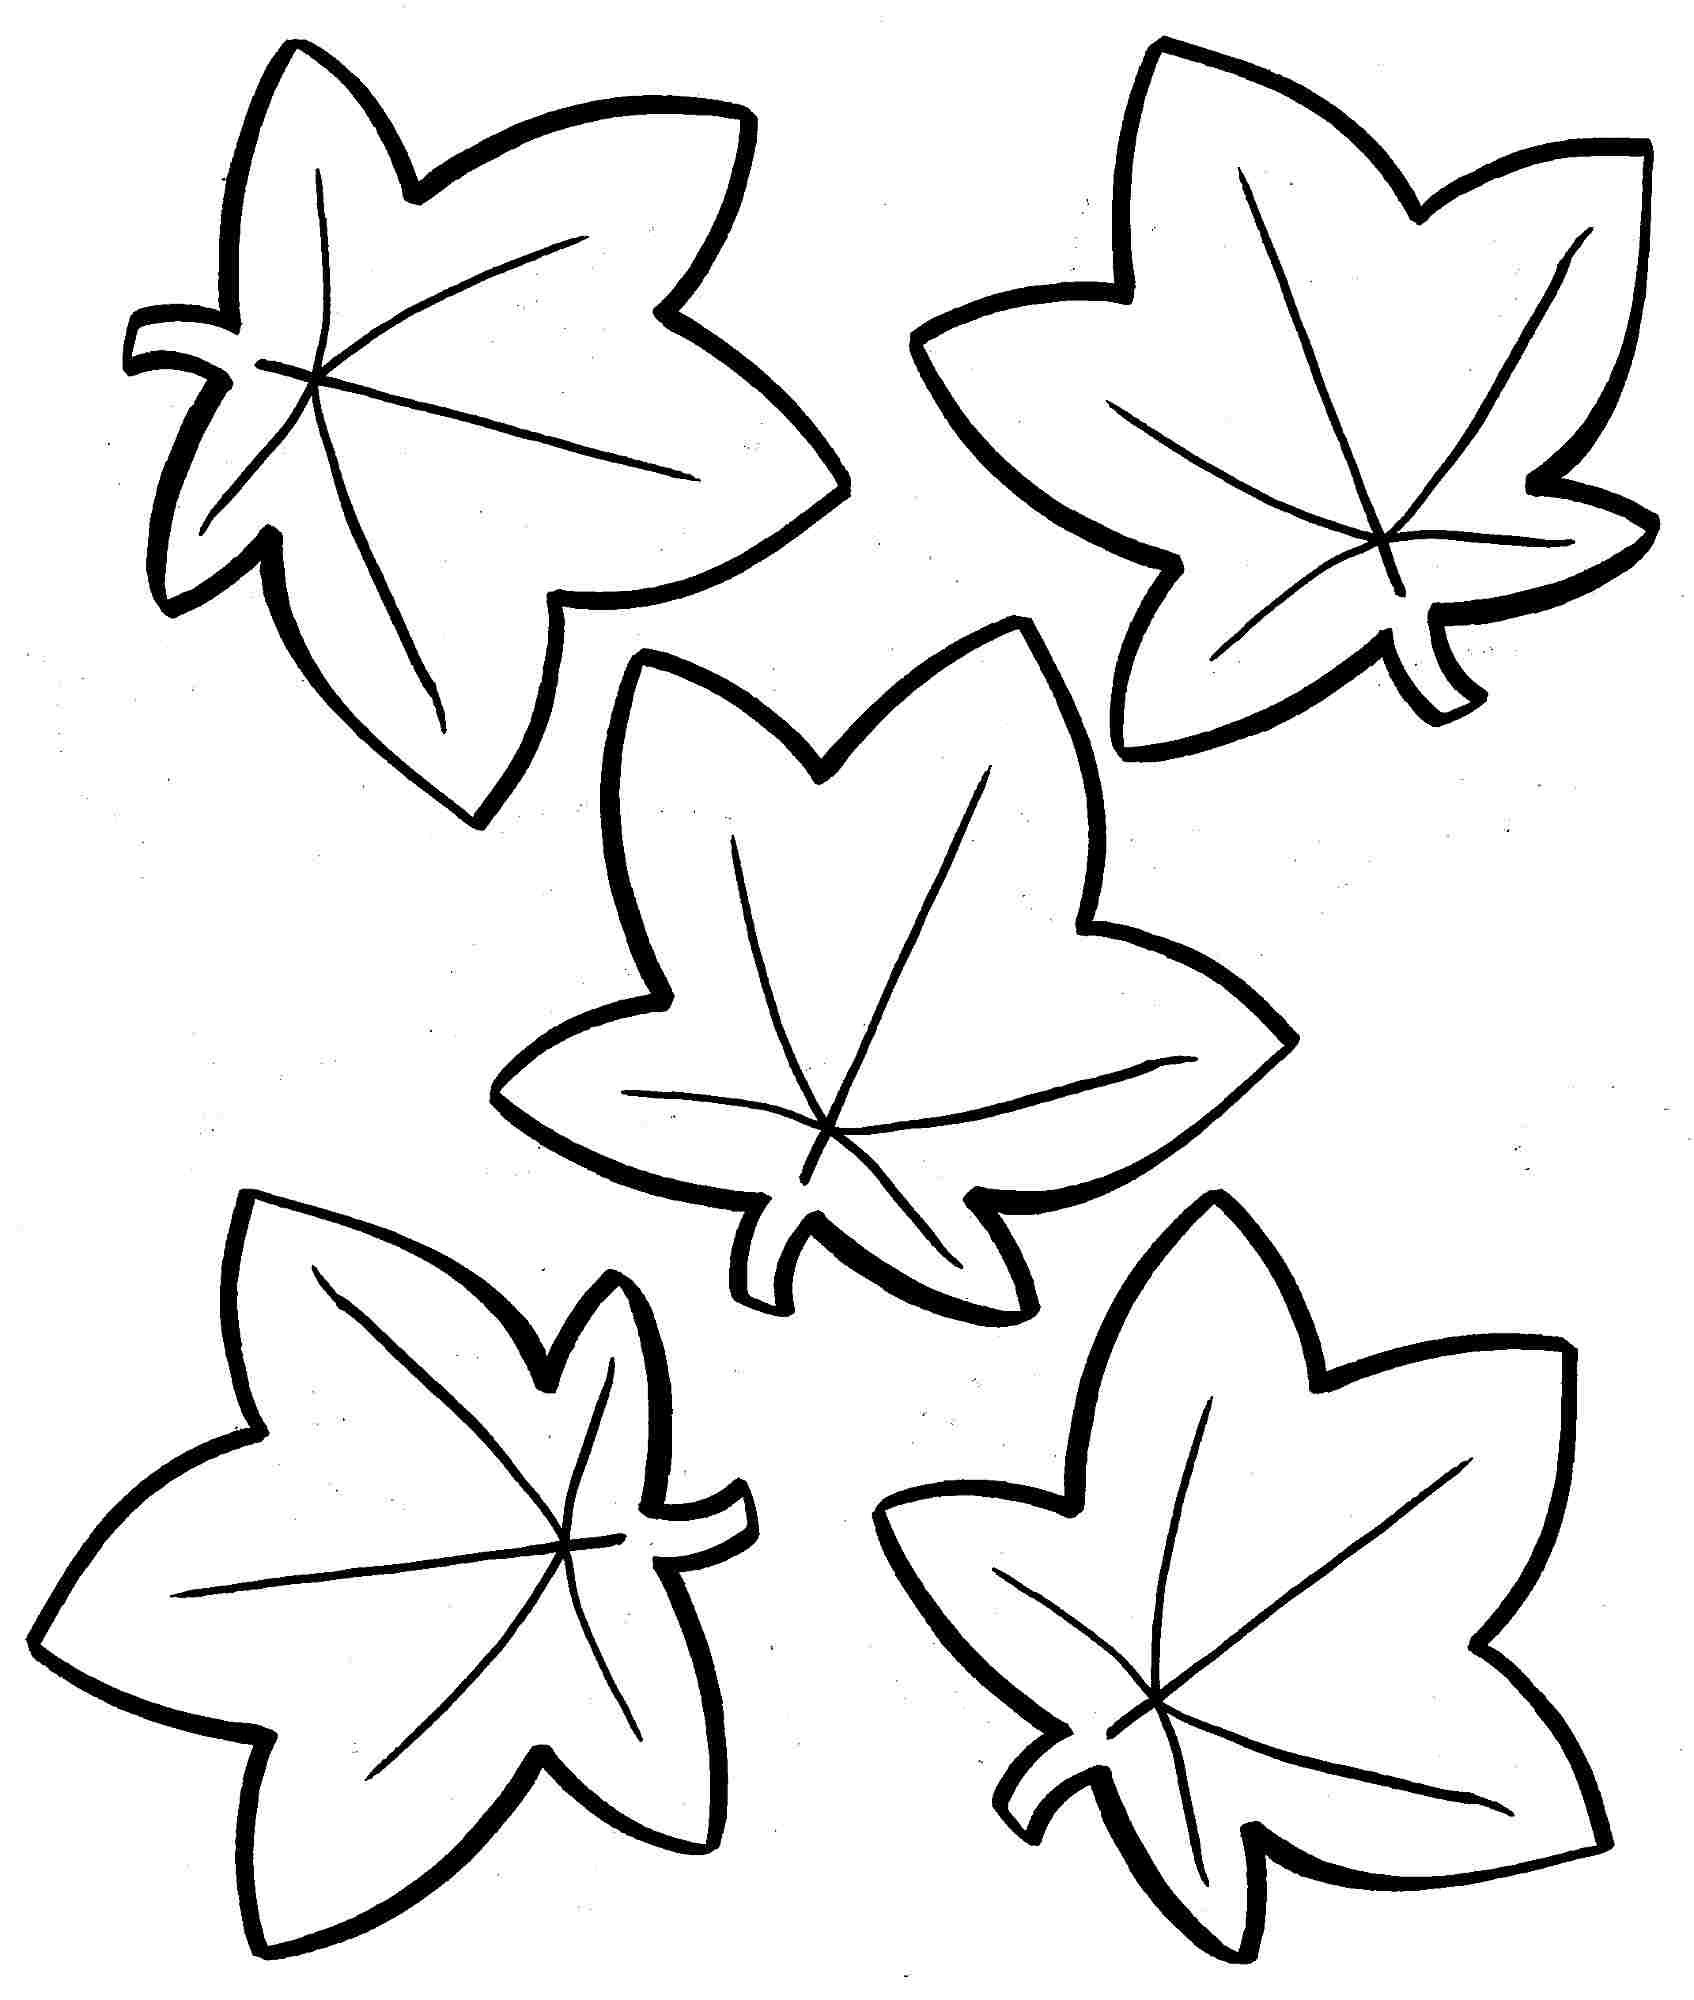 Coloring Pages: Awesome Autumn Leaves Coloring Pages Photo - Free Printable Leaf Coloring Pages